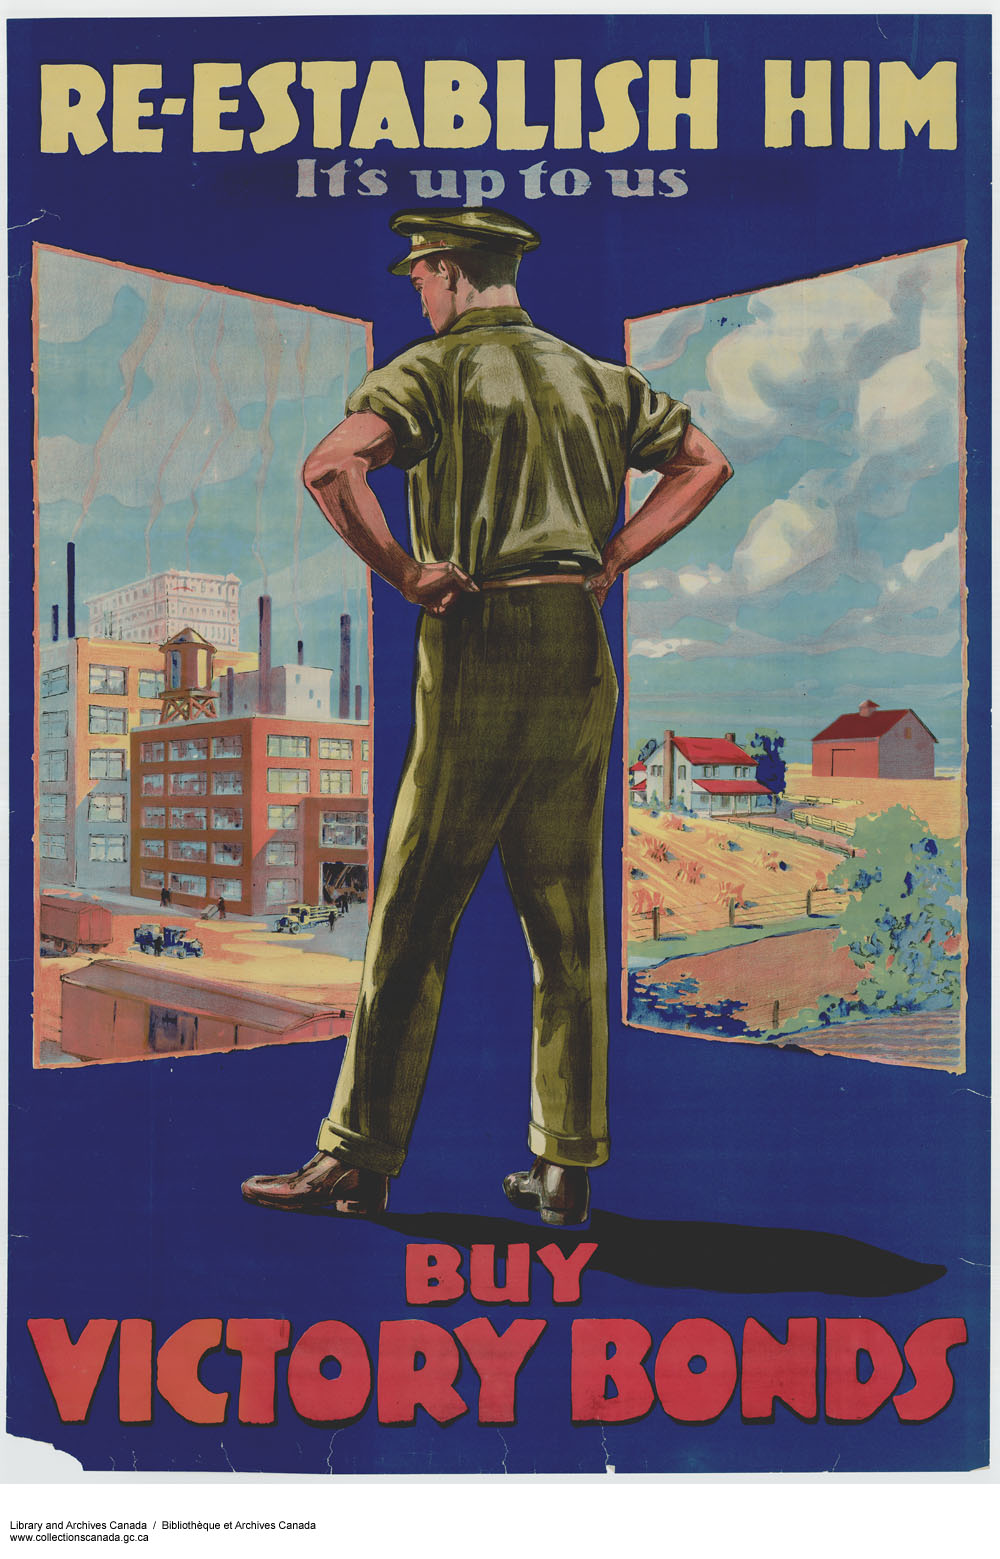 """A soldier views a factory and farm. Caption: """"Re-establish him: It's up to us. Buy victory bonds."""""""